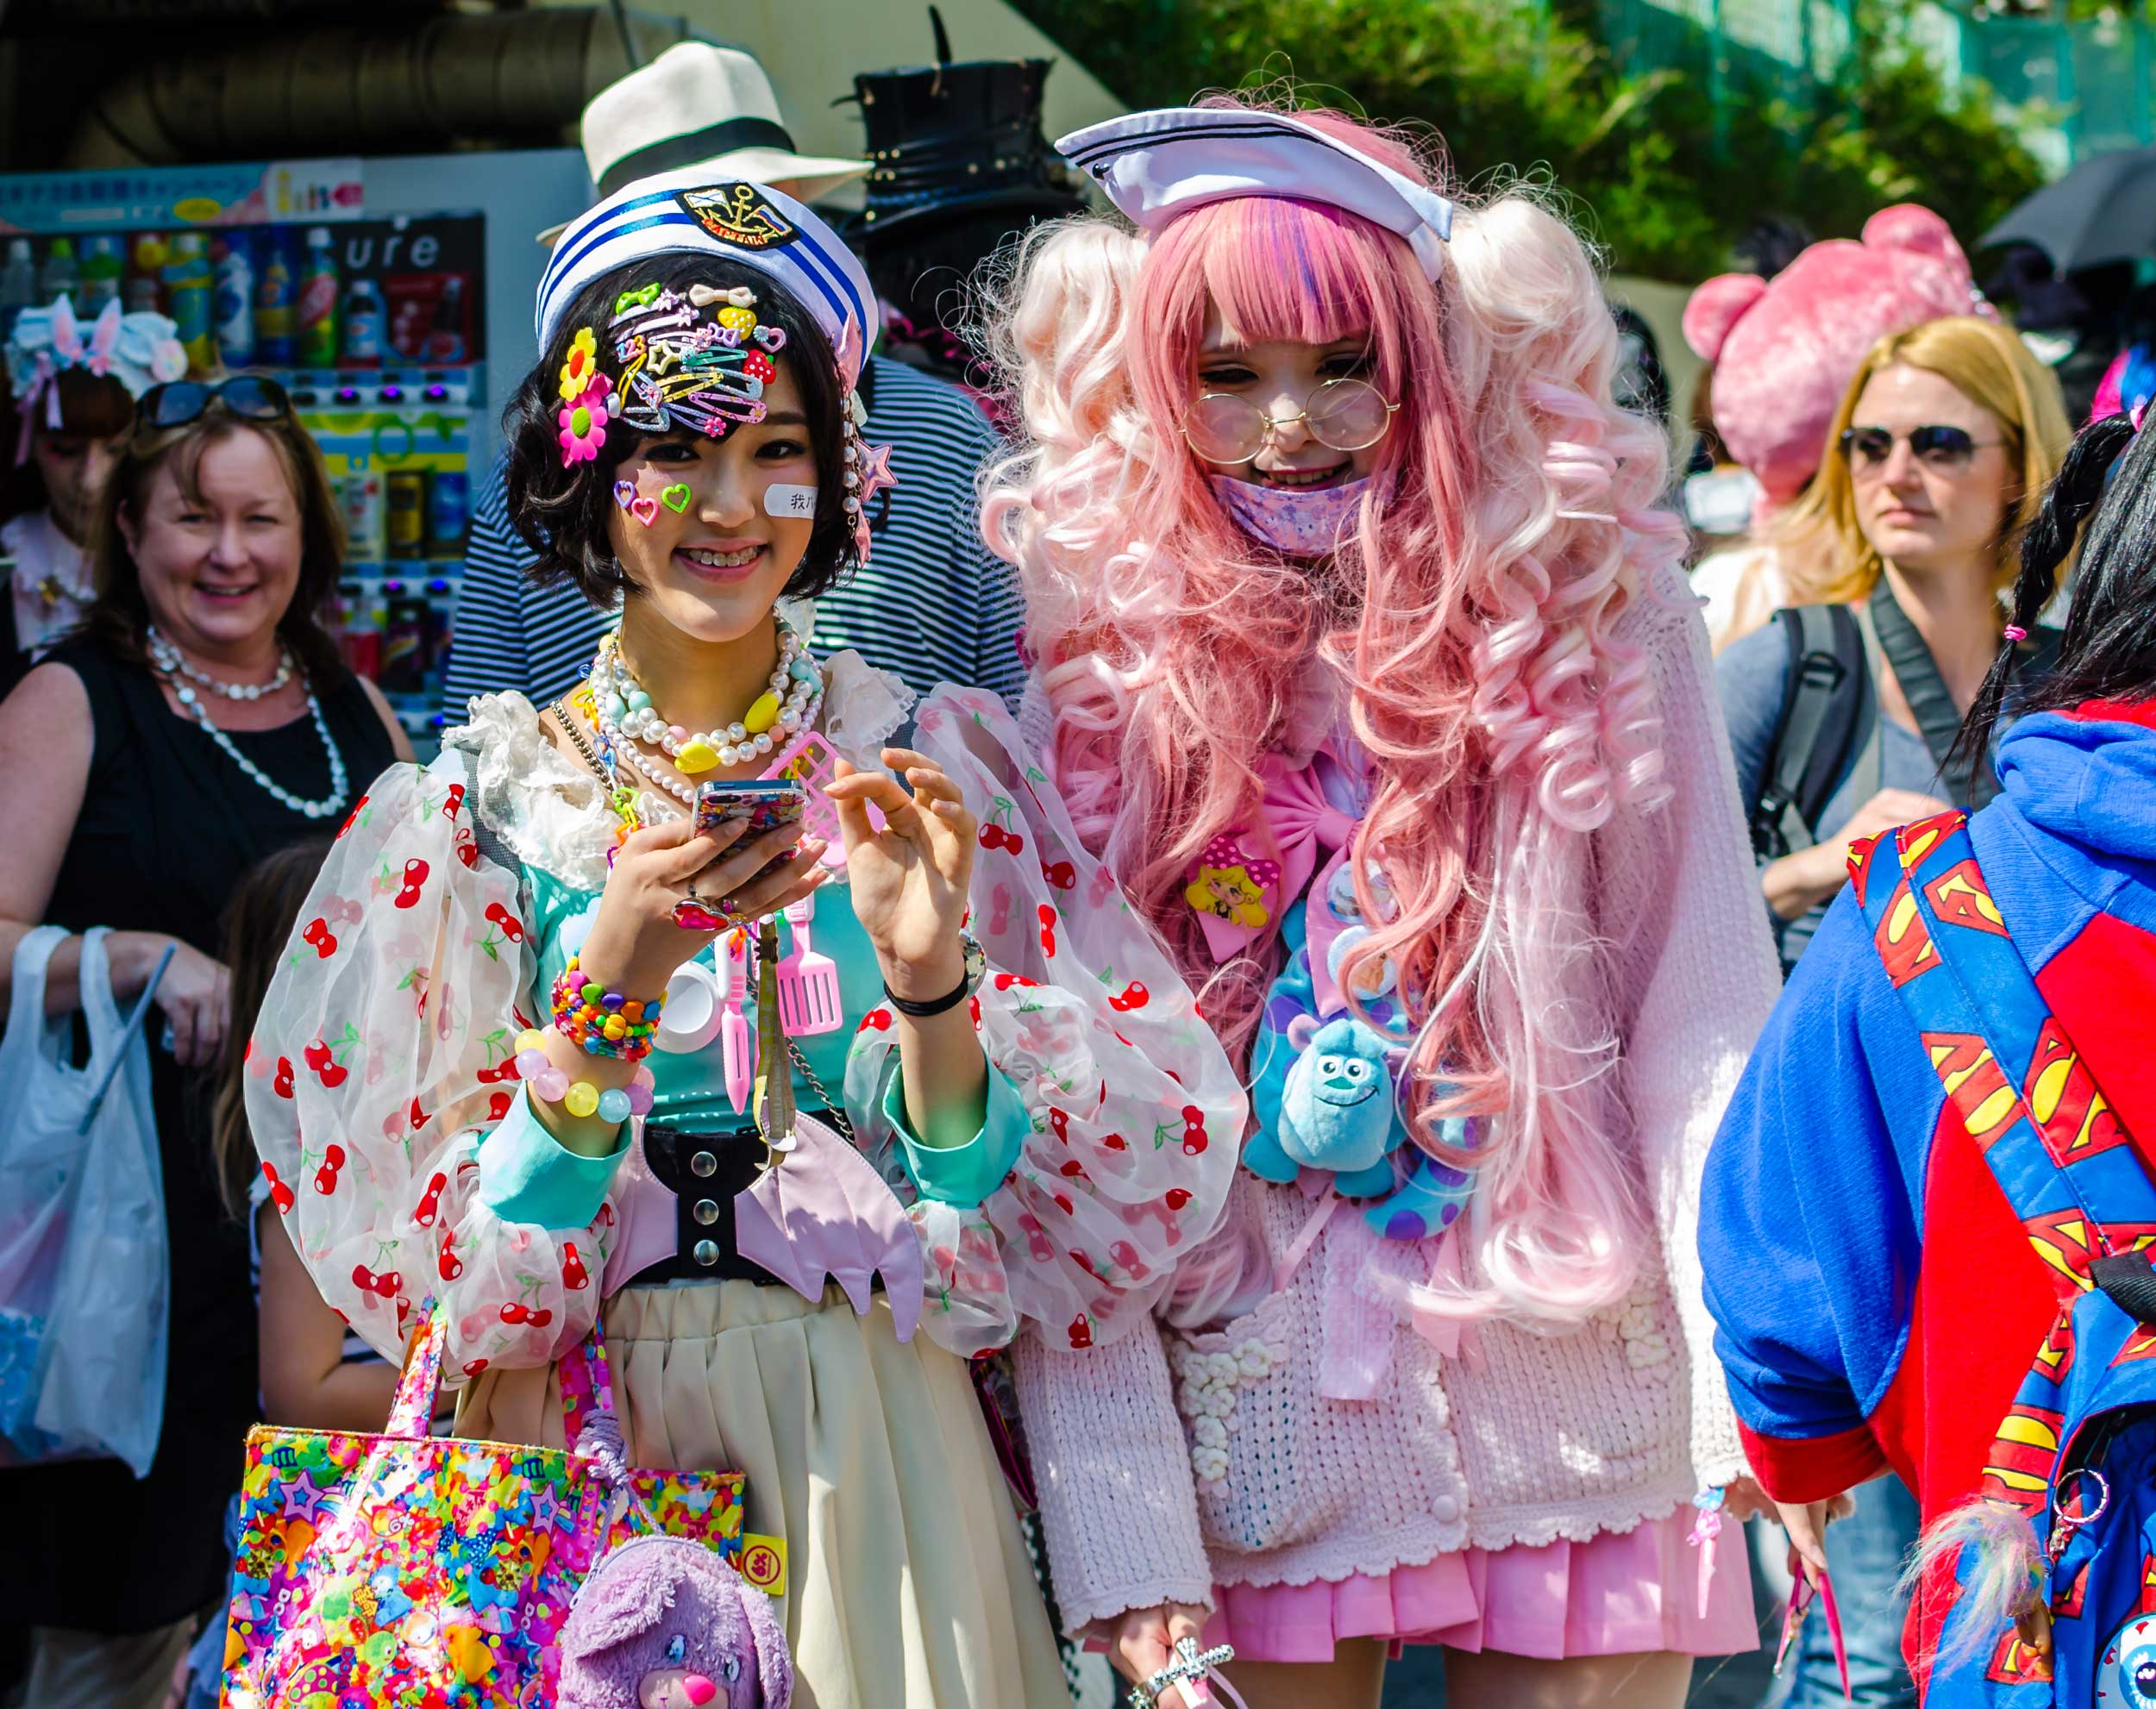 Two women dressed in cosplay outfits in a street in Tokyo